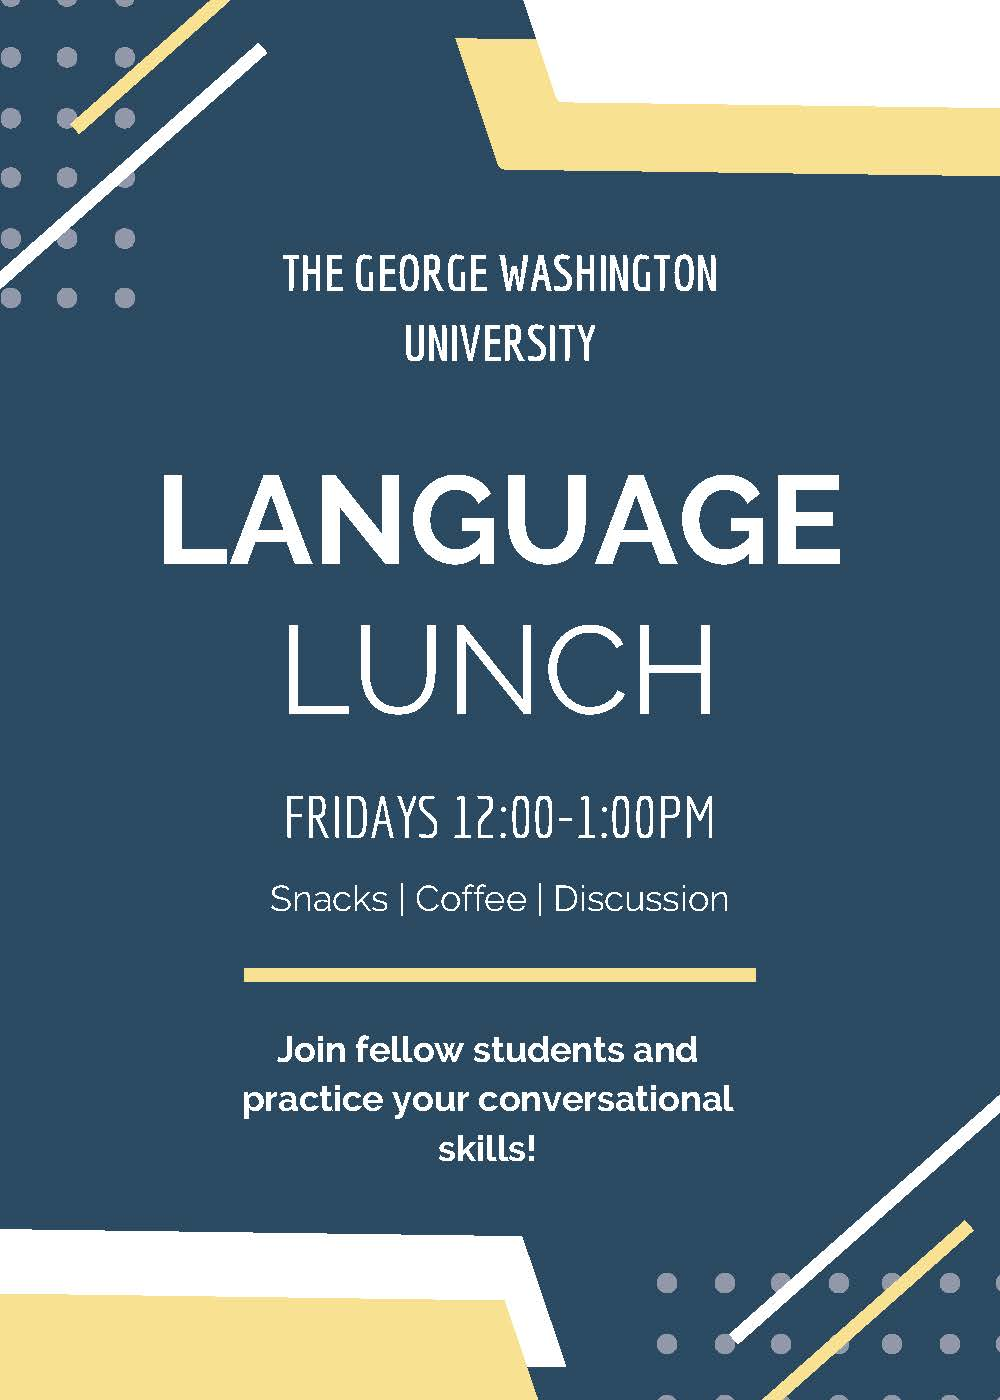 Language Lunch flyer